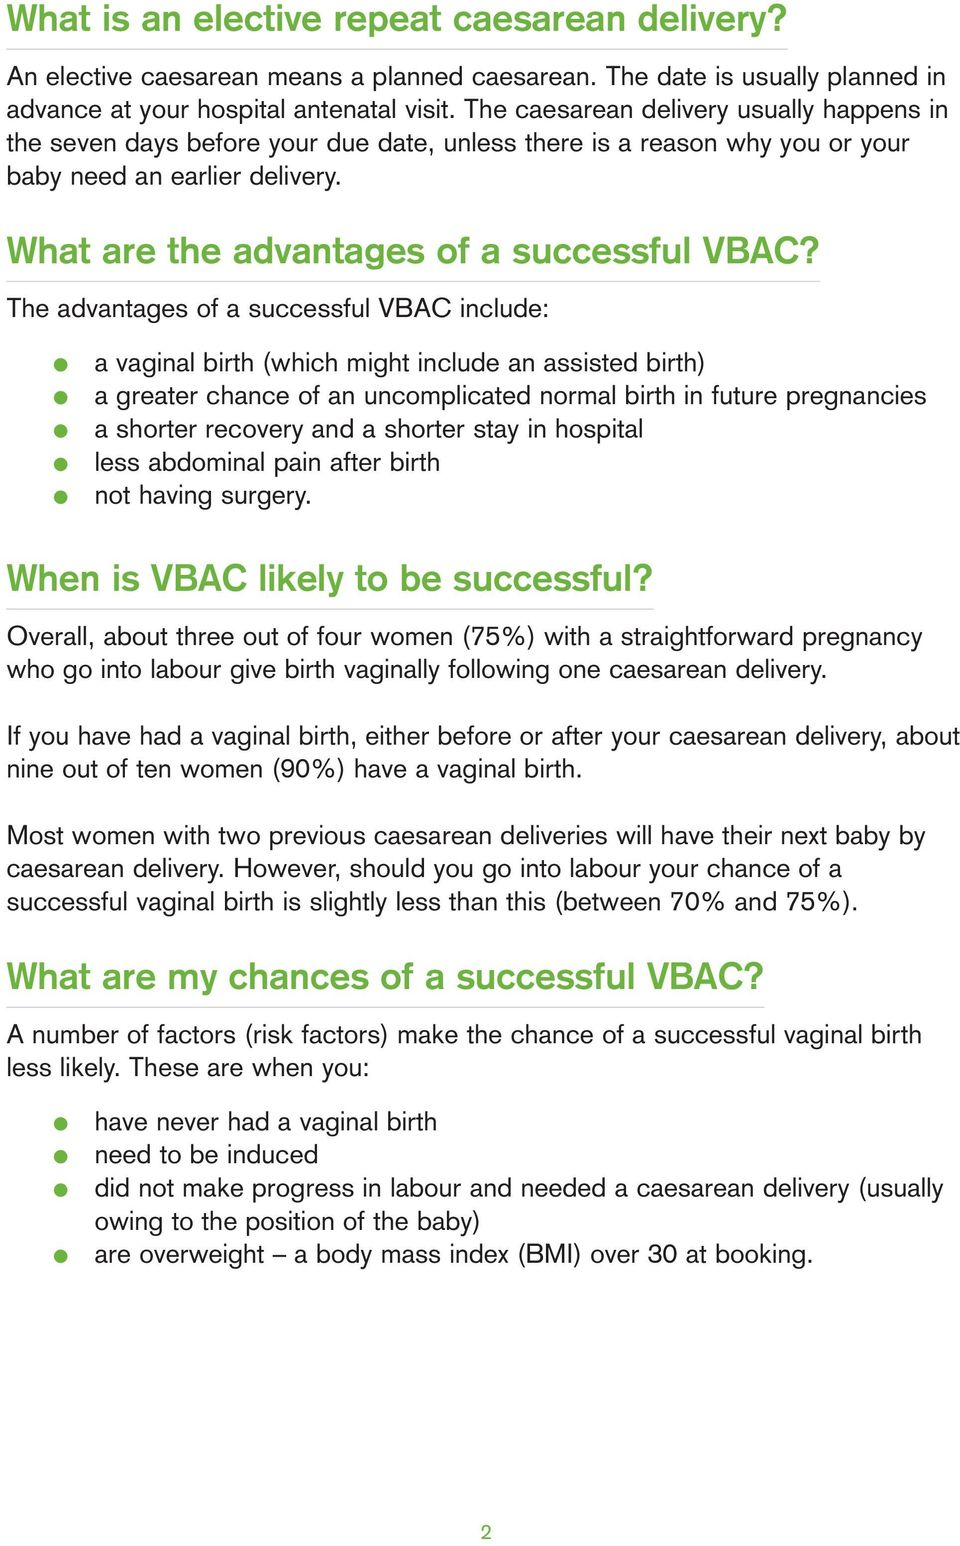 The advantages of a successful VBAC include: a vaginal birth (which might include an assisted birth) a greater chance of an uncomplicated normal birth in future pregnancies a shorter recovery and a